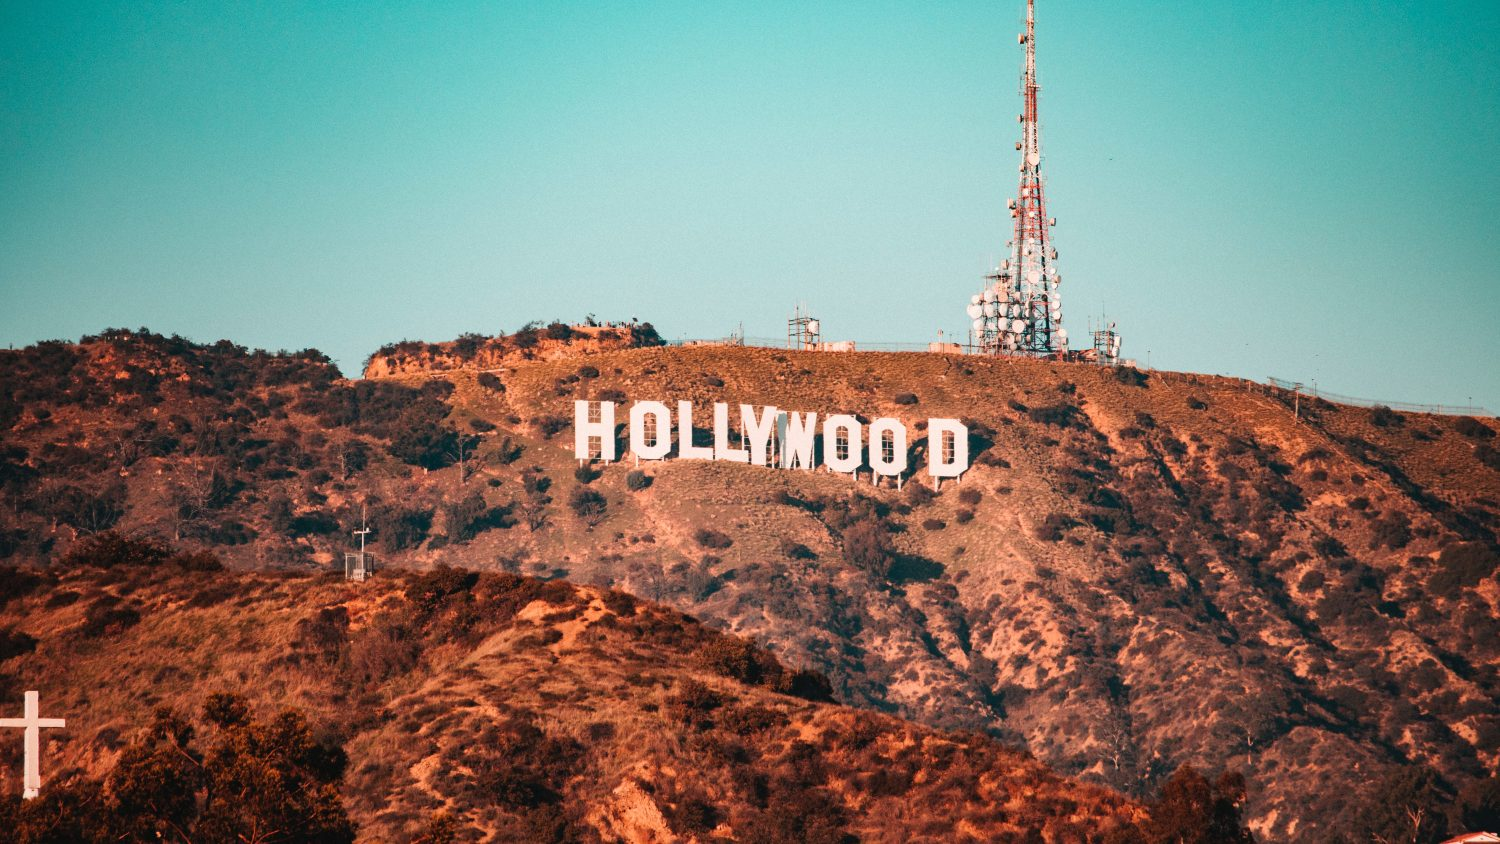 What's Changing Attitudes In Hollywood?